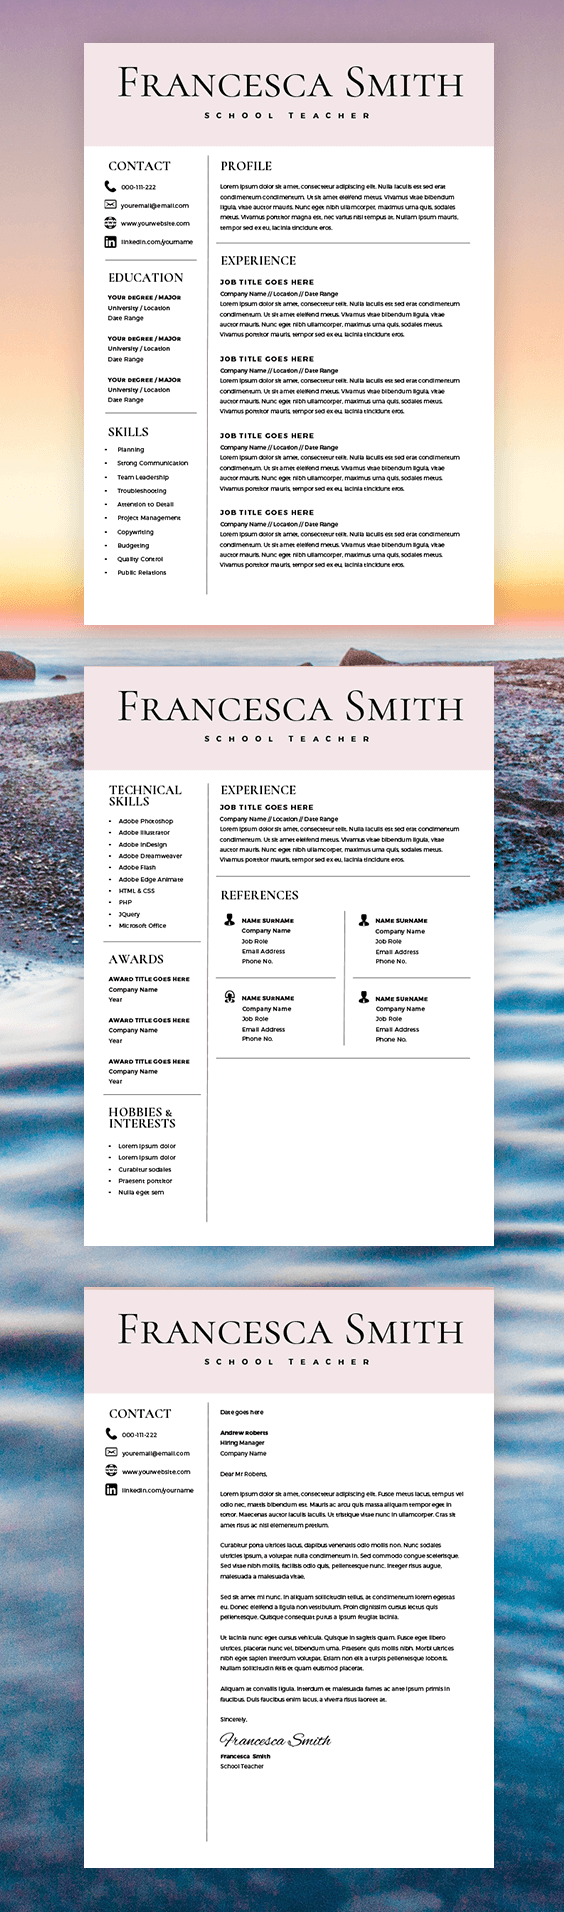 Available in a range of different colour designs instant downloadable - Teacher Resume Template Resume For Teacher Cover Letter For Teacher Microsoft Word Mac